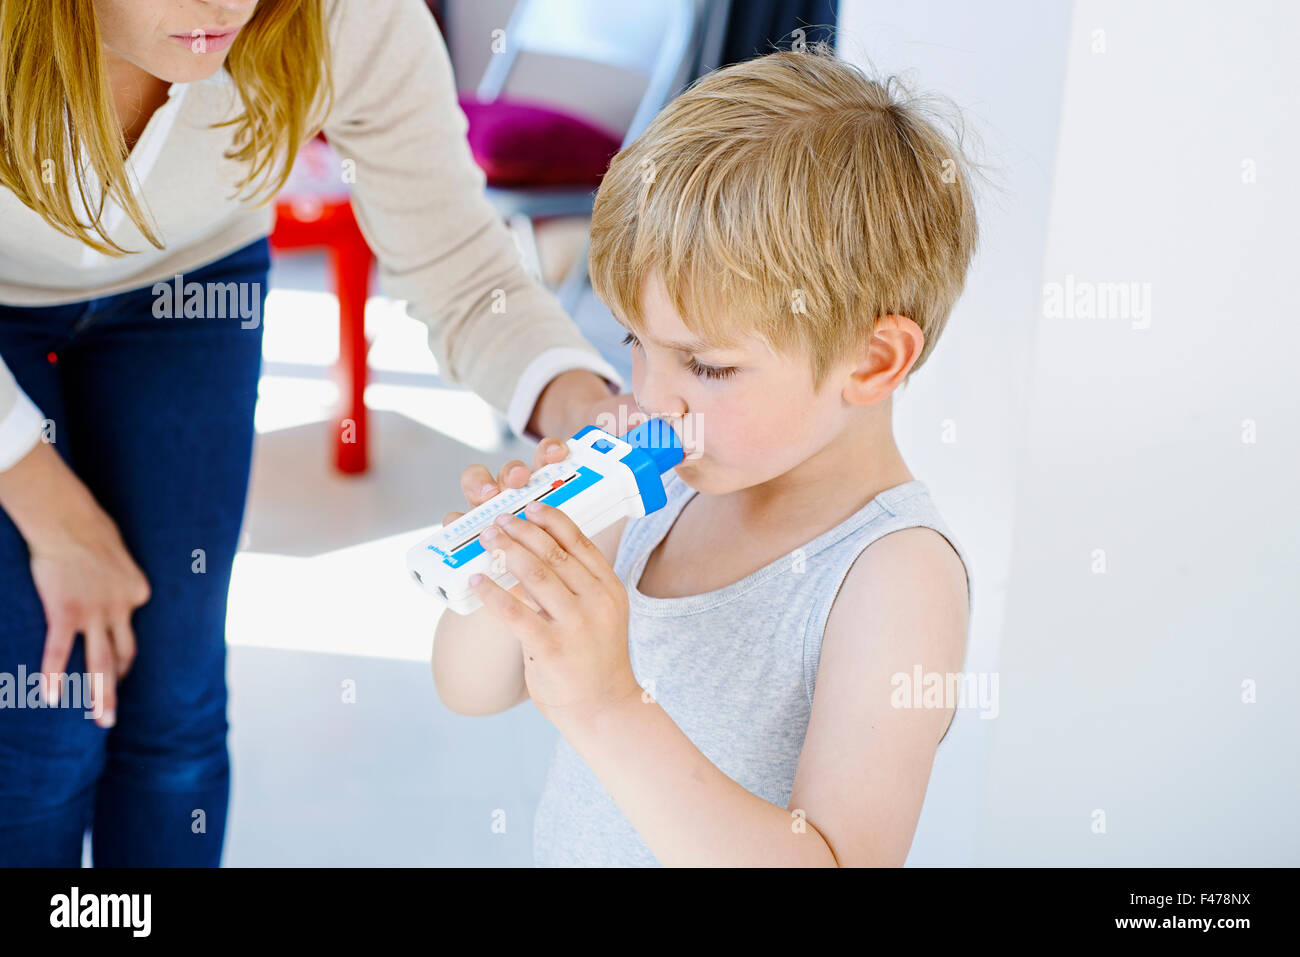 BREATHING, SPIROMETRY IN A CHILD - Stock Image